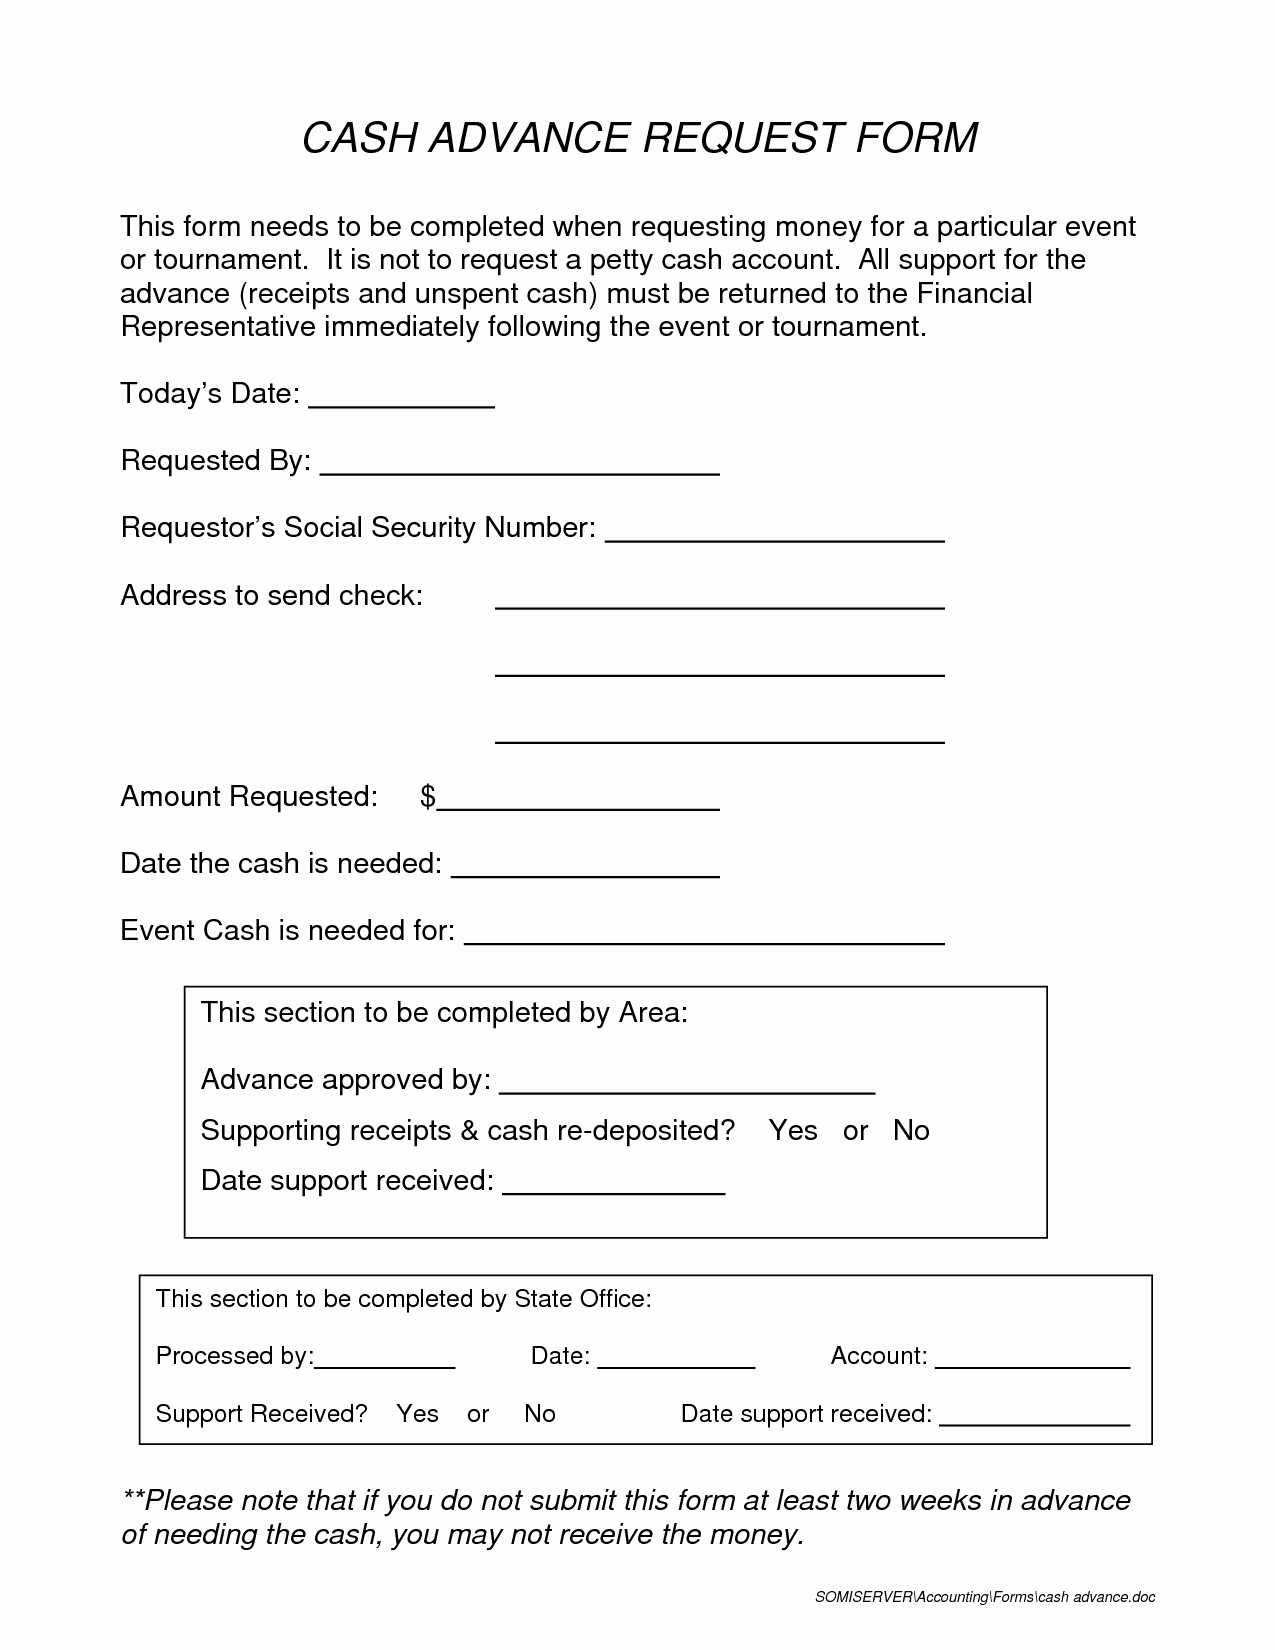 Travel Advance Request form Template Lovely 5 Travel Advance Request forms – Word Templates